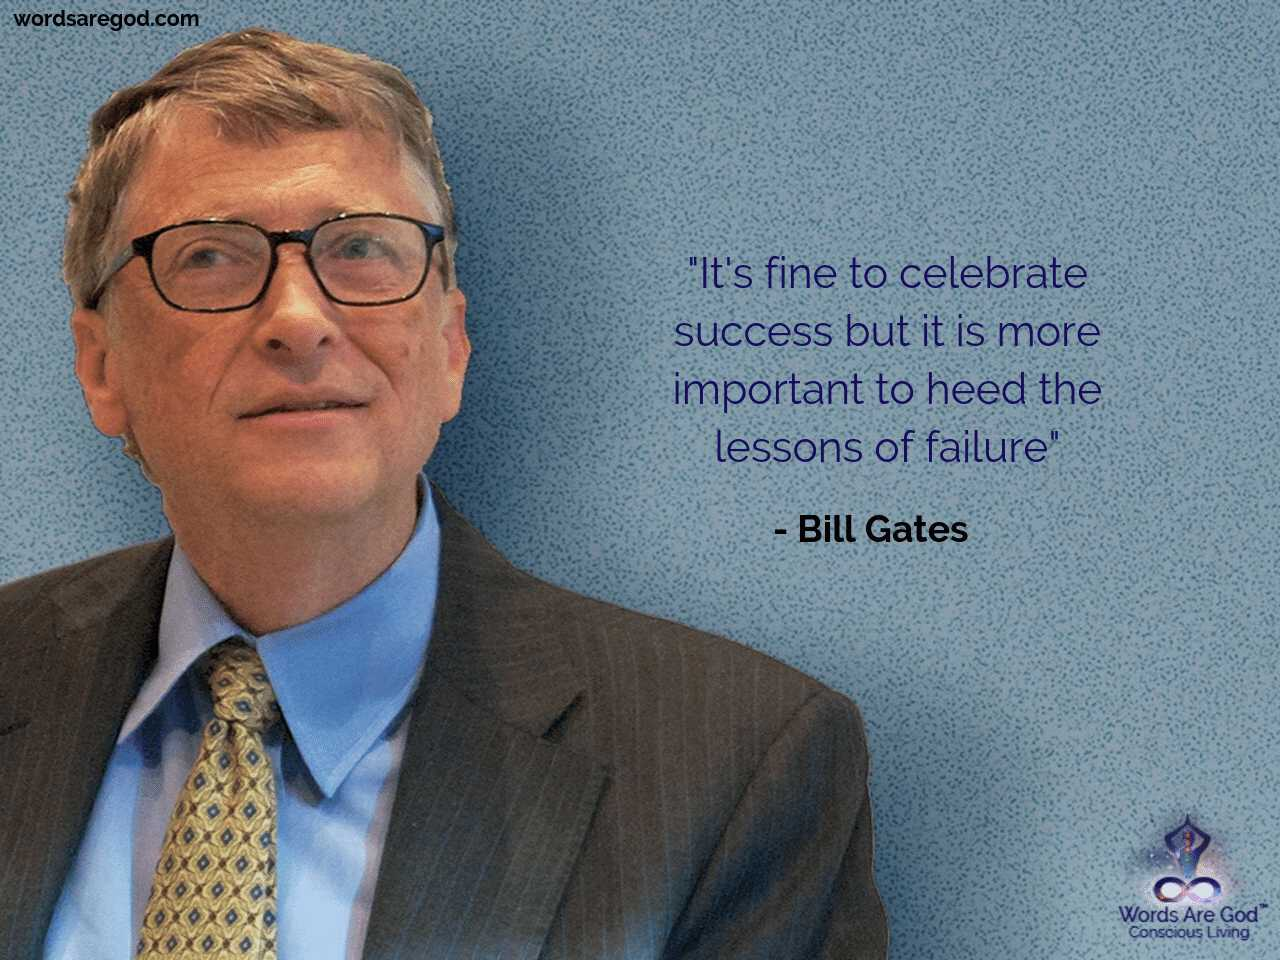 Bill Gates Motivational quote by Bill Gates